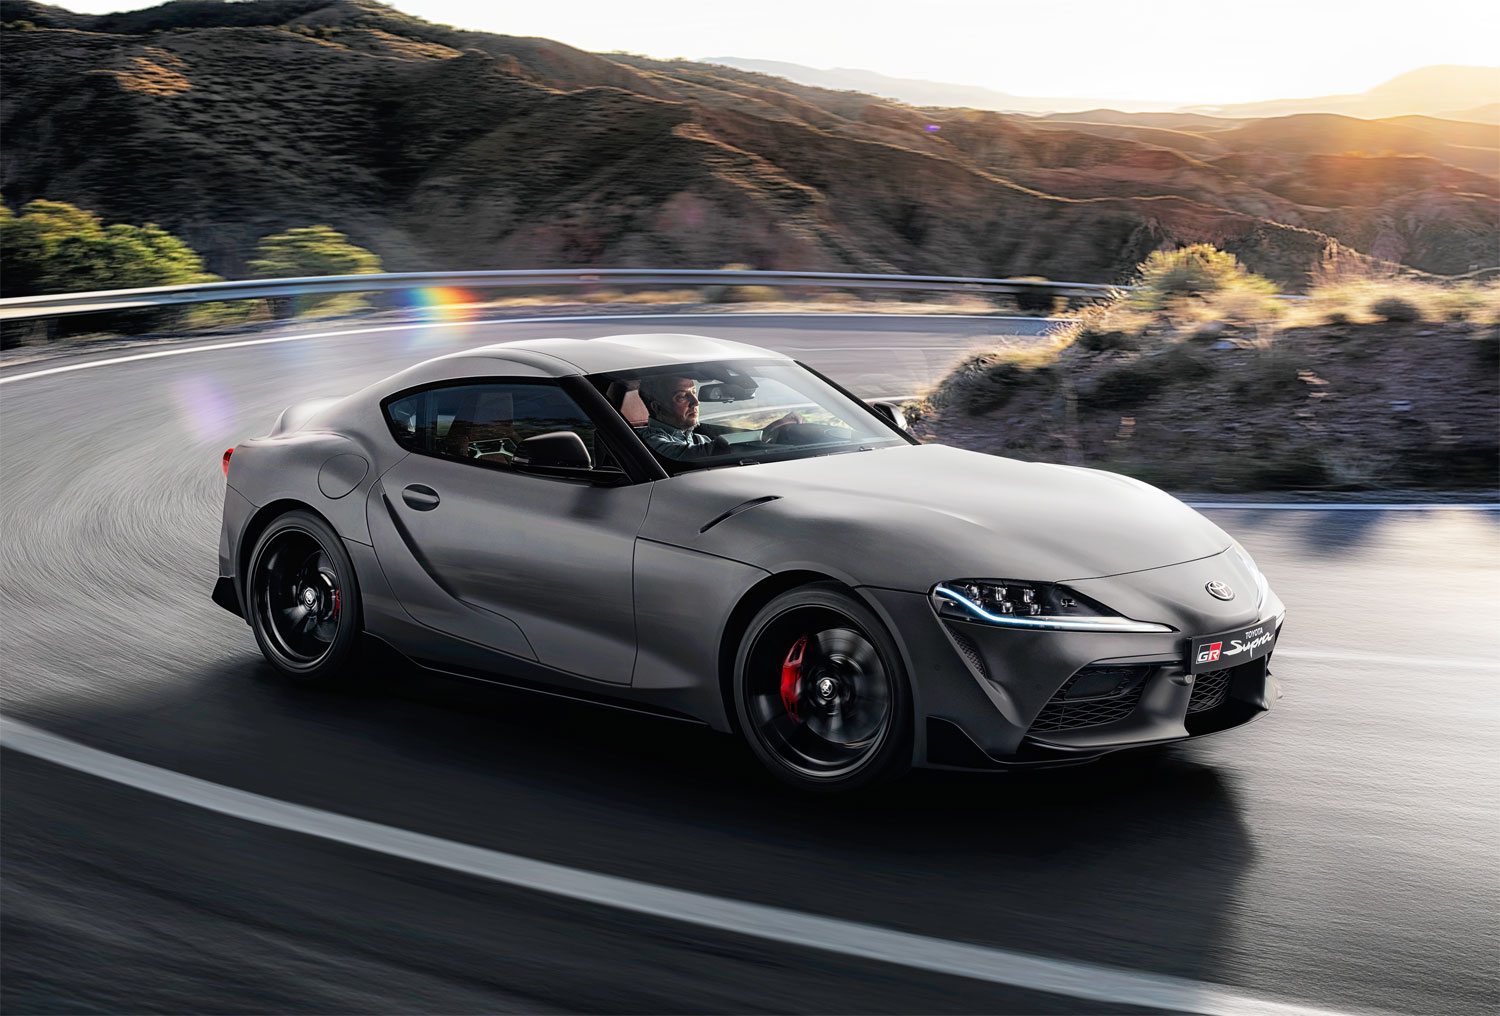 First Appearance of All-New Toyota GR Supra Takes Place at NAIAS